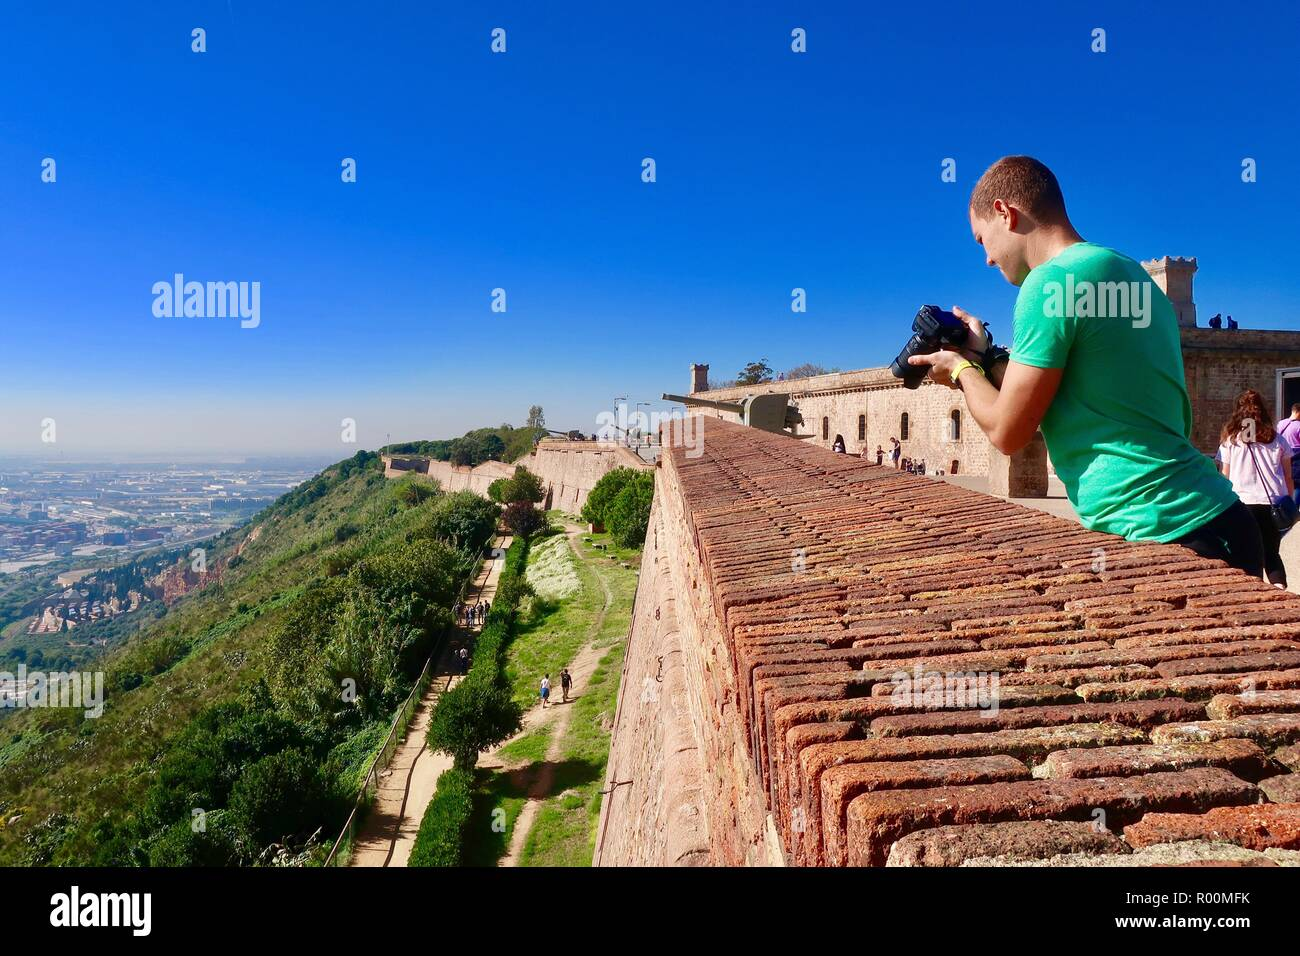 Barcelona, Spain, October 2018. A male photographer at Castell / Castle Mont Juic on a hot bright afternoon. - Stock Image